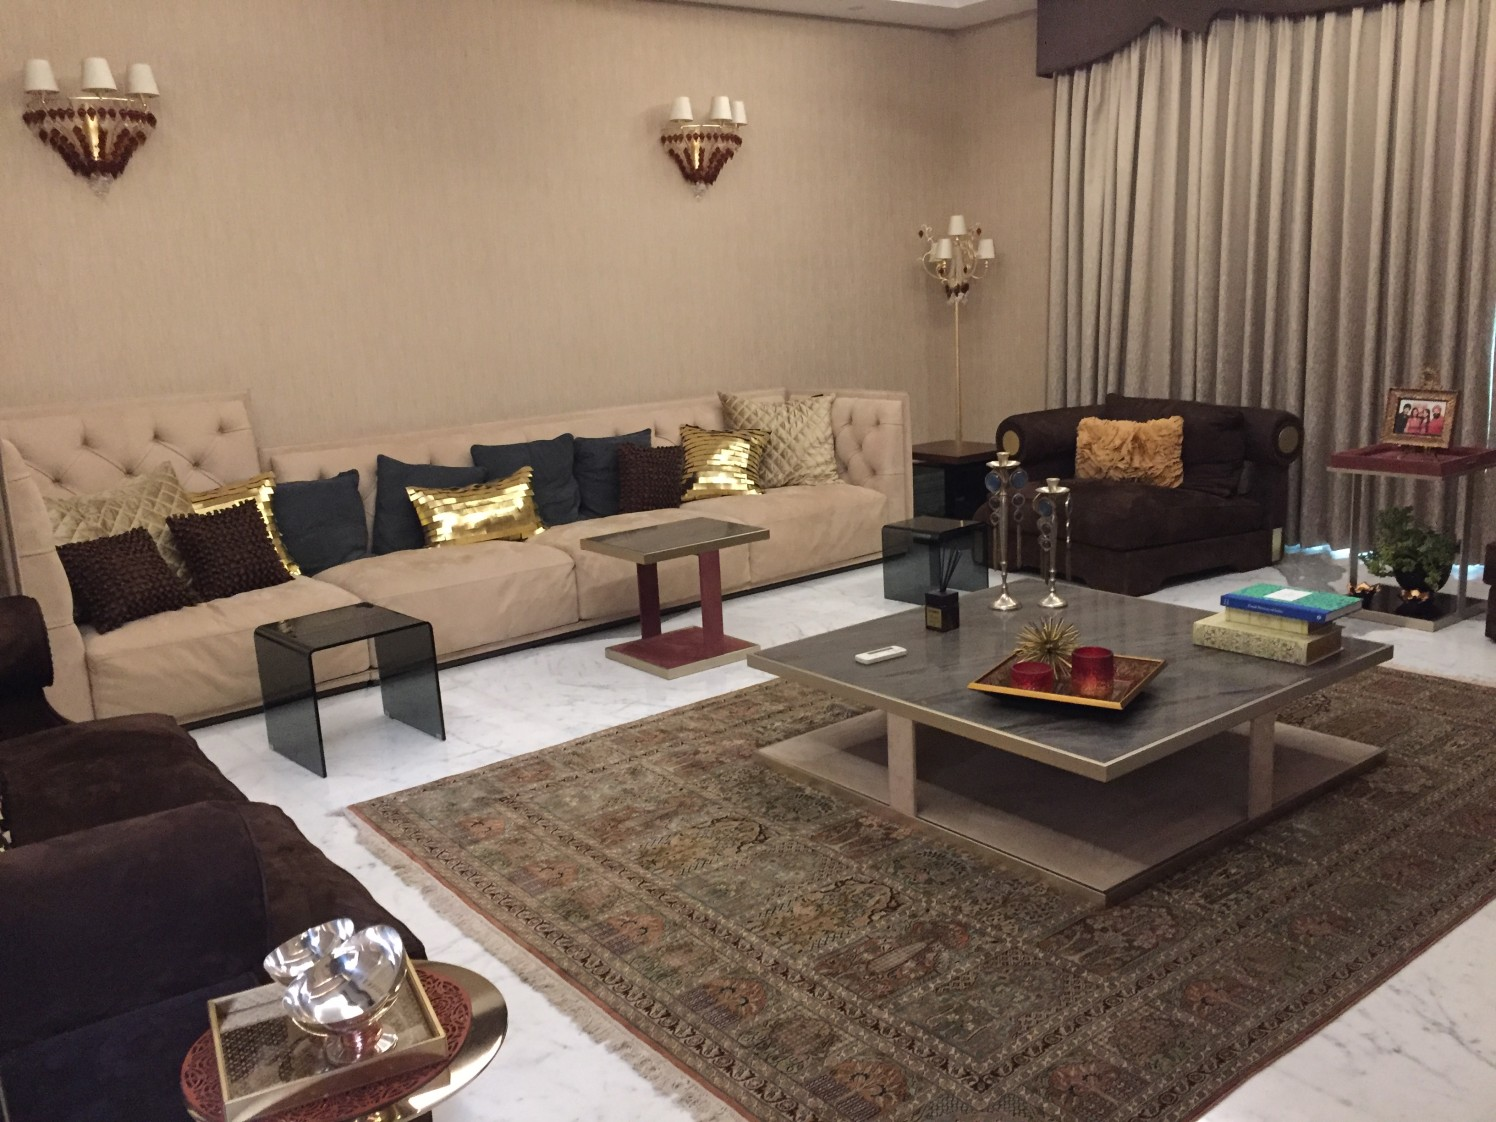 Traditional Living Room With Sectional Sofa by Tarique Anwar Living-room Traditional | Interior Design Photos & Ideas